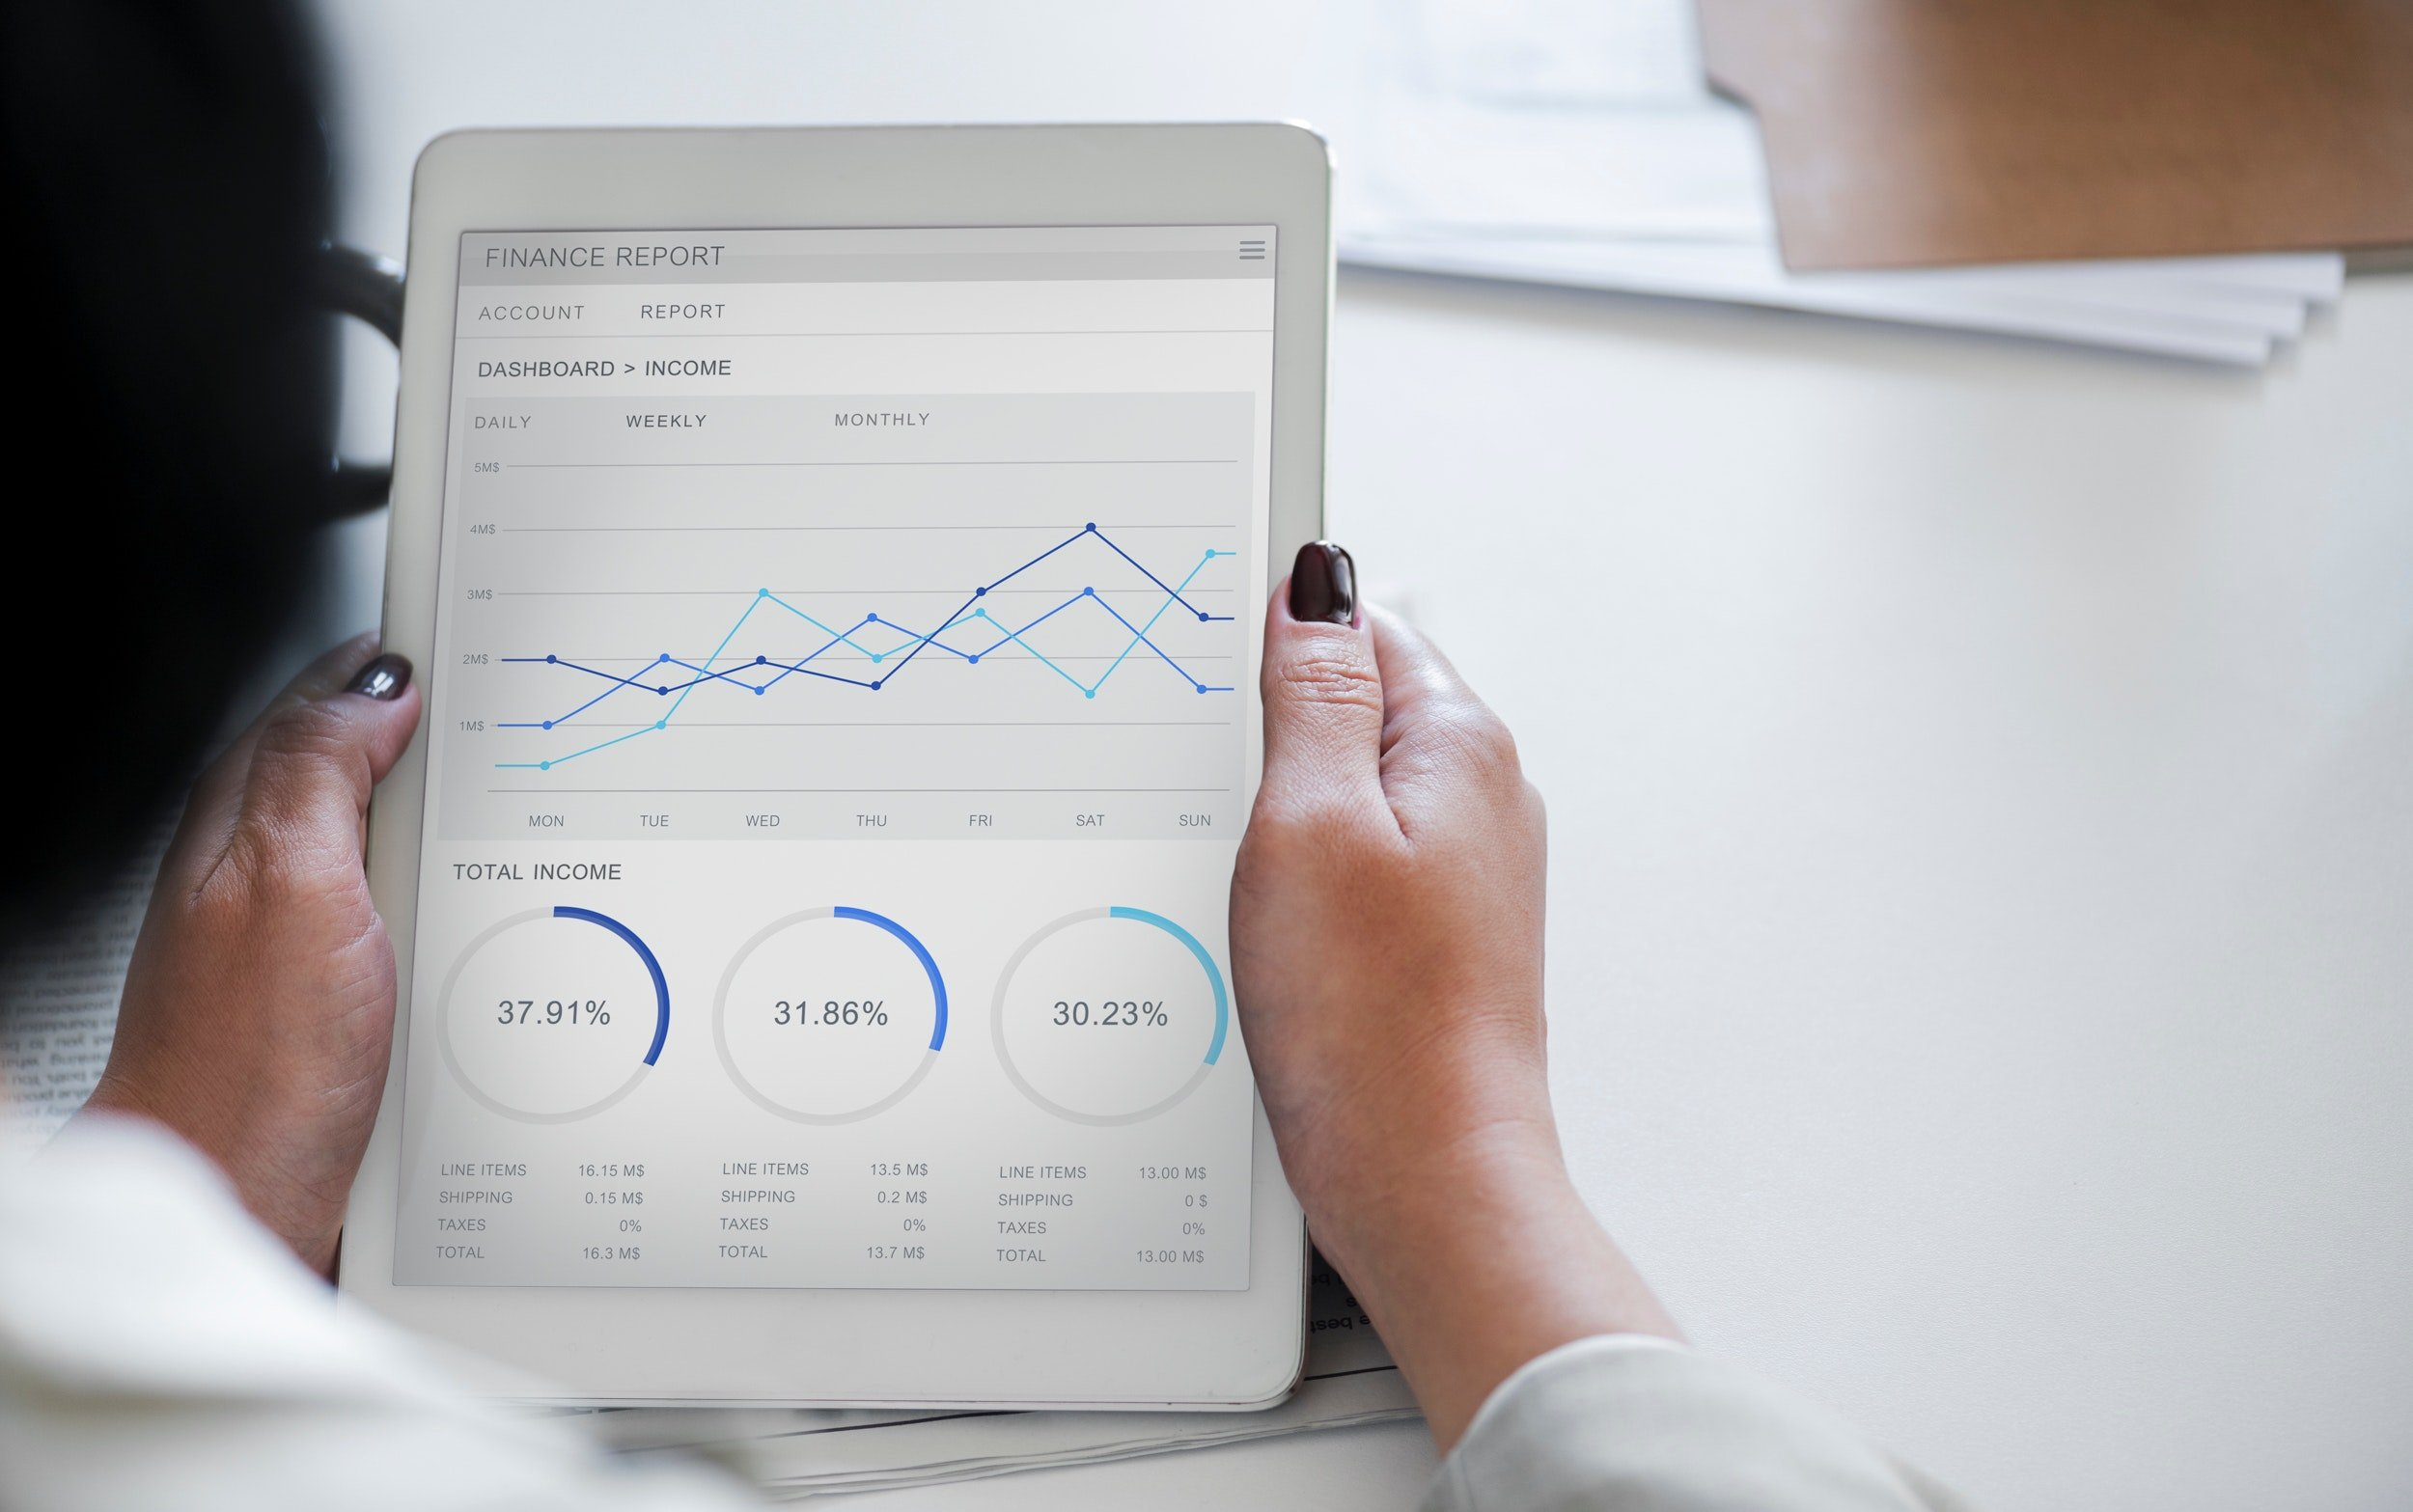 4 Ways Sales Enablement Can Make A Difference in 2019